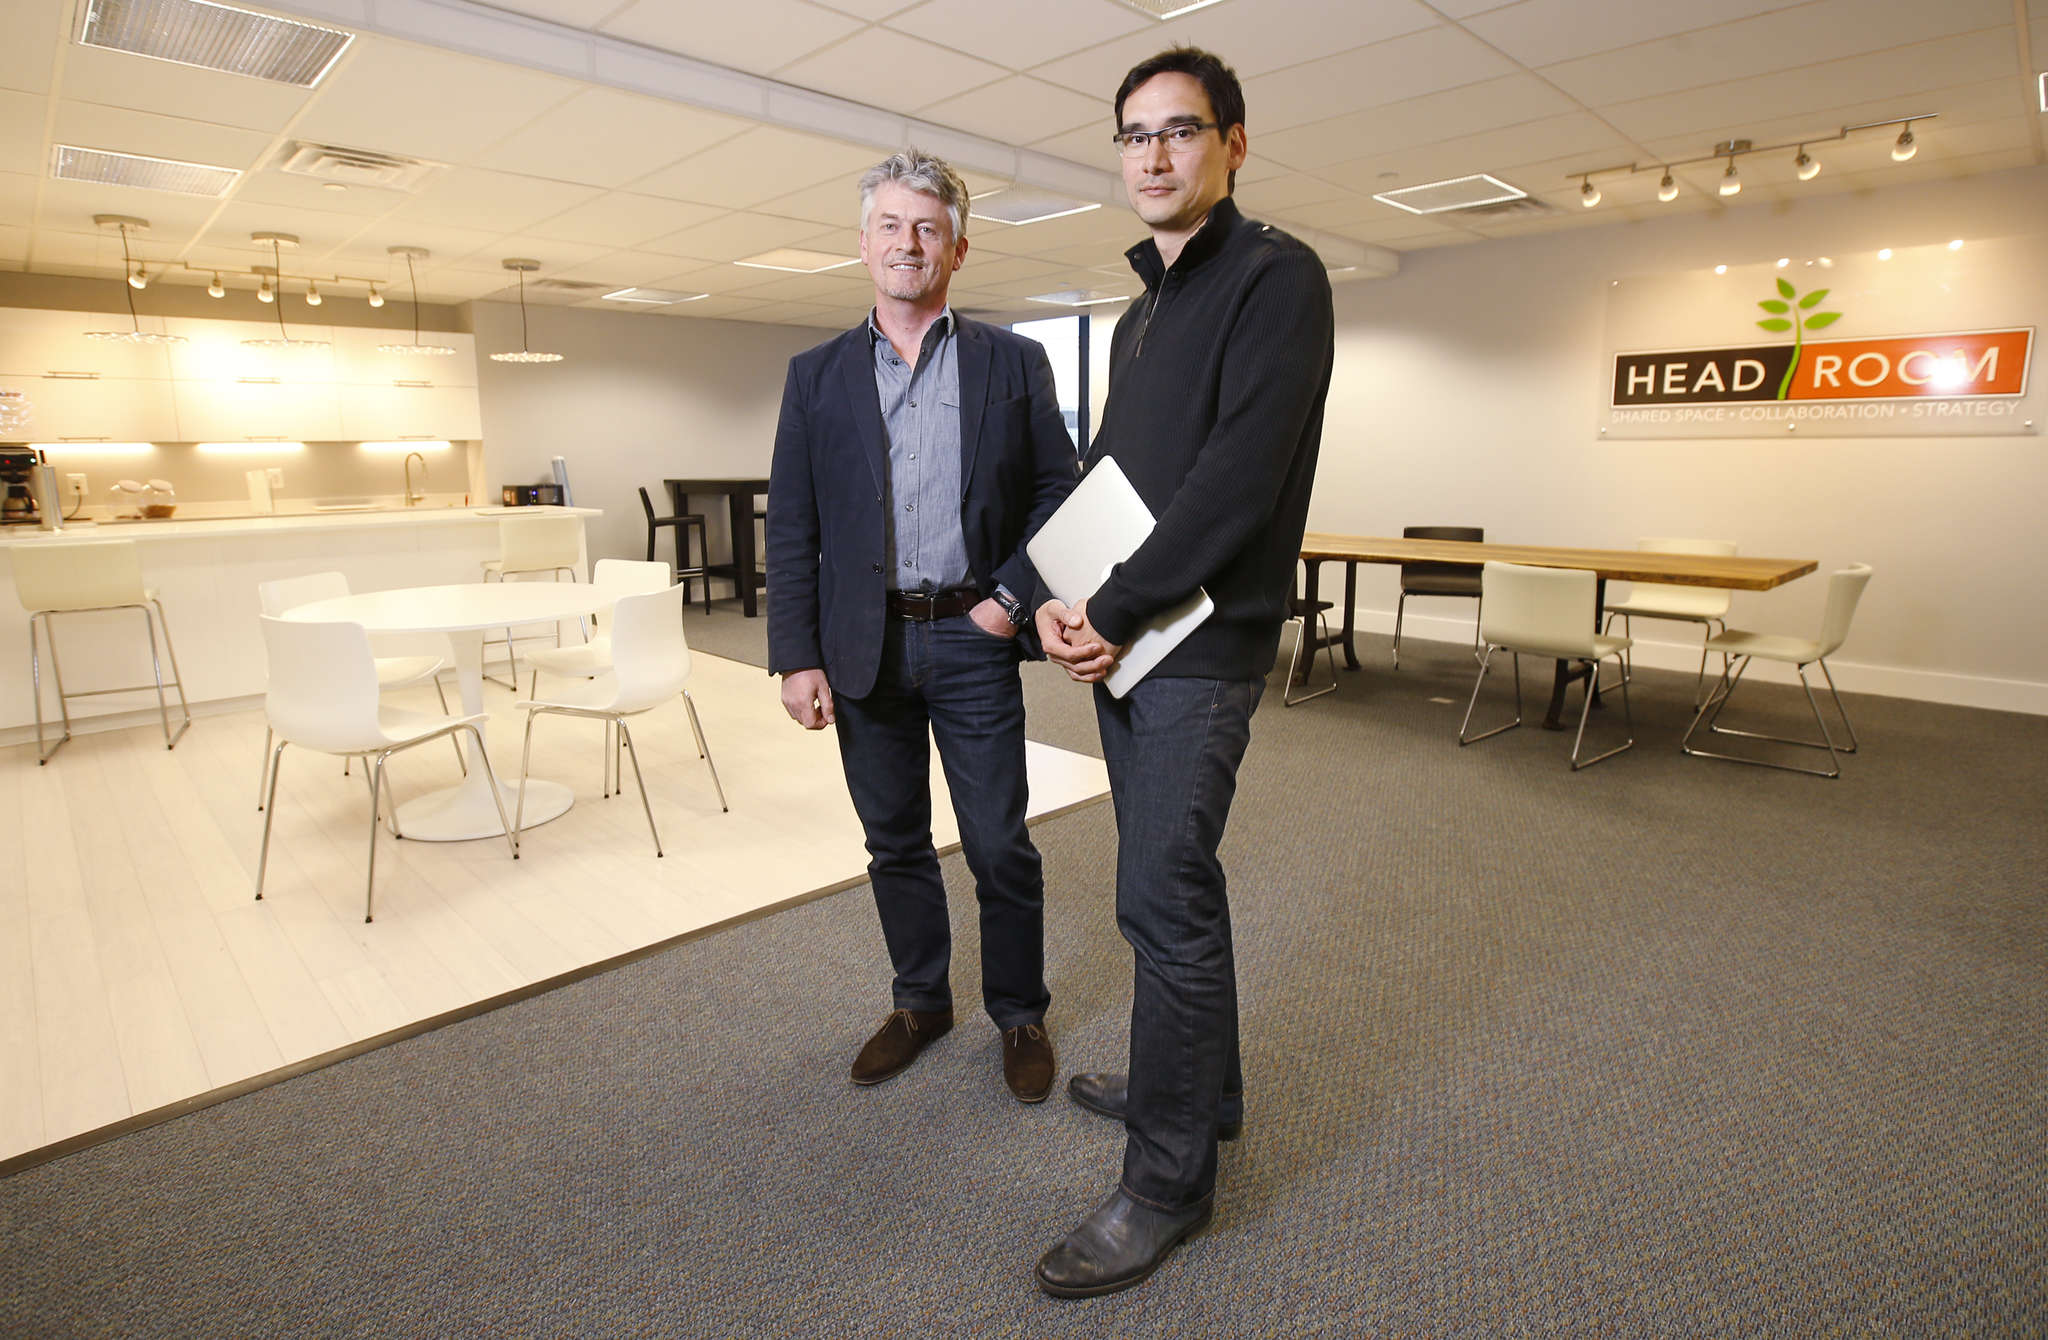 John Tooher and Dan Lievens (right) are the entrepreneurs behind the suburban shared-office space, with sites in Media and Wayne. Suburban clients are likely to be older, with different business needs, the pair say.